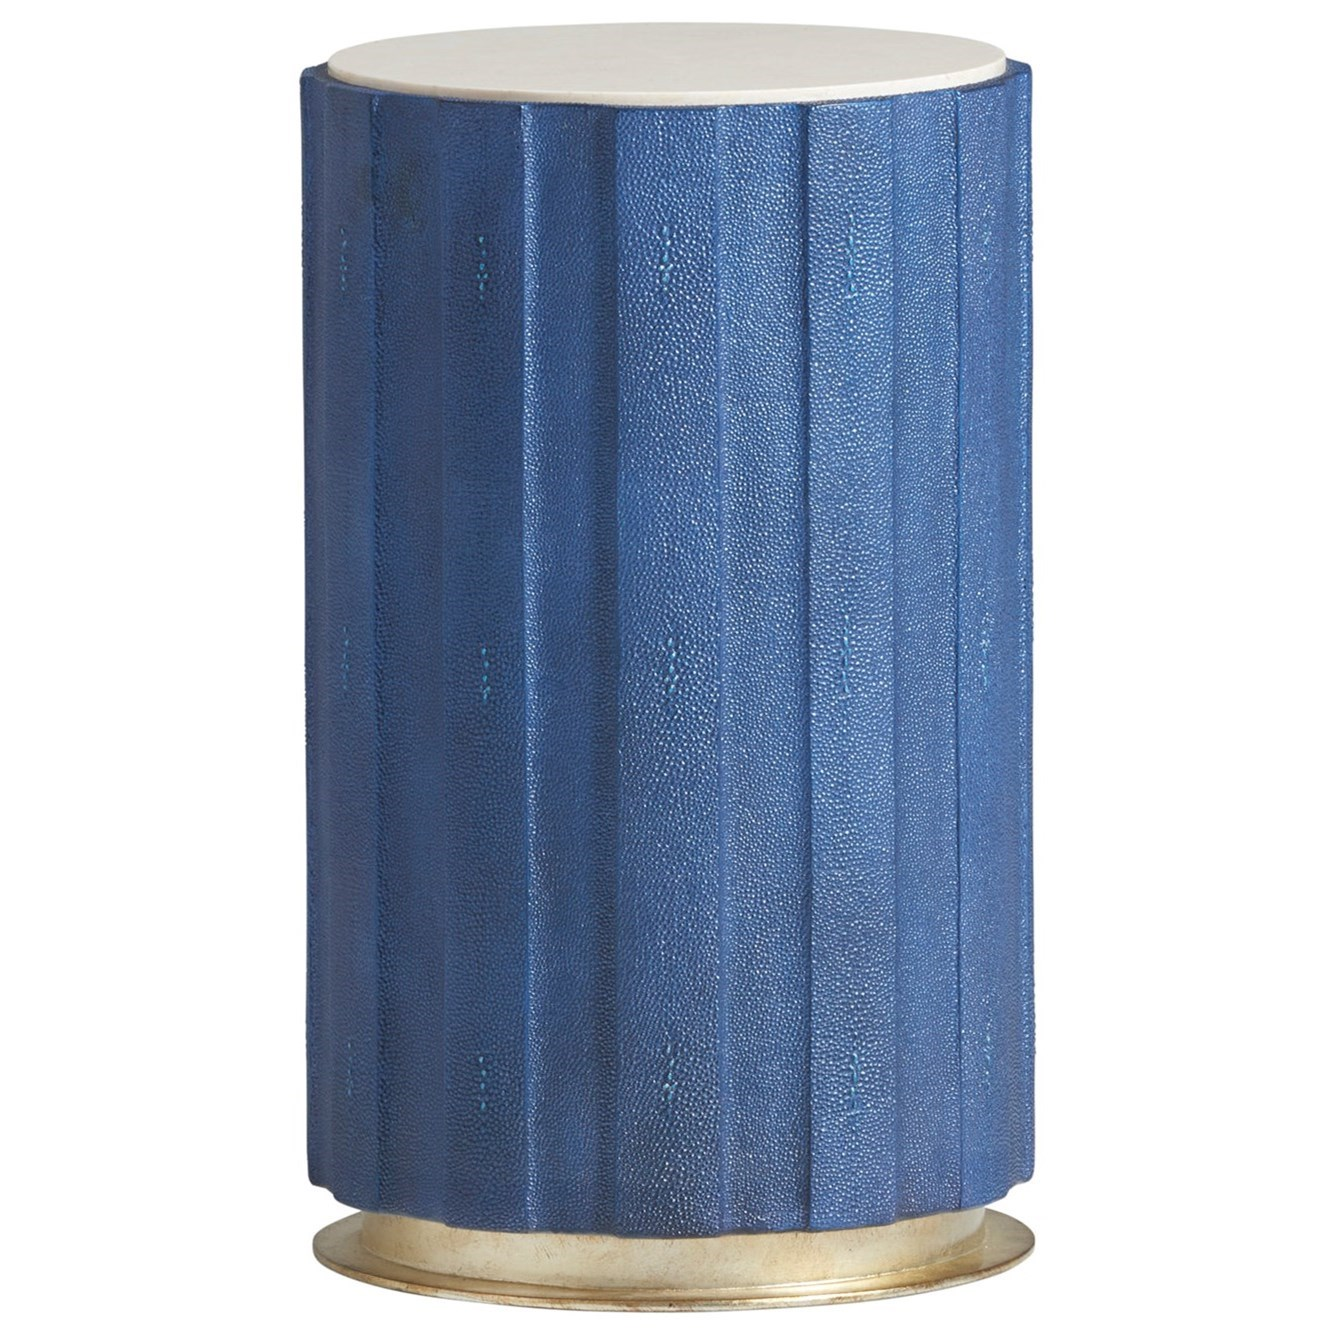 Carlyle Chelsea Cobalt Shagreen Accent Table by Lexington at Baer's Furniture